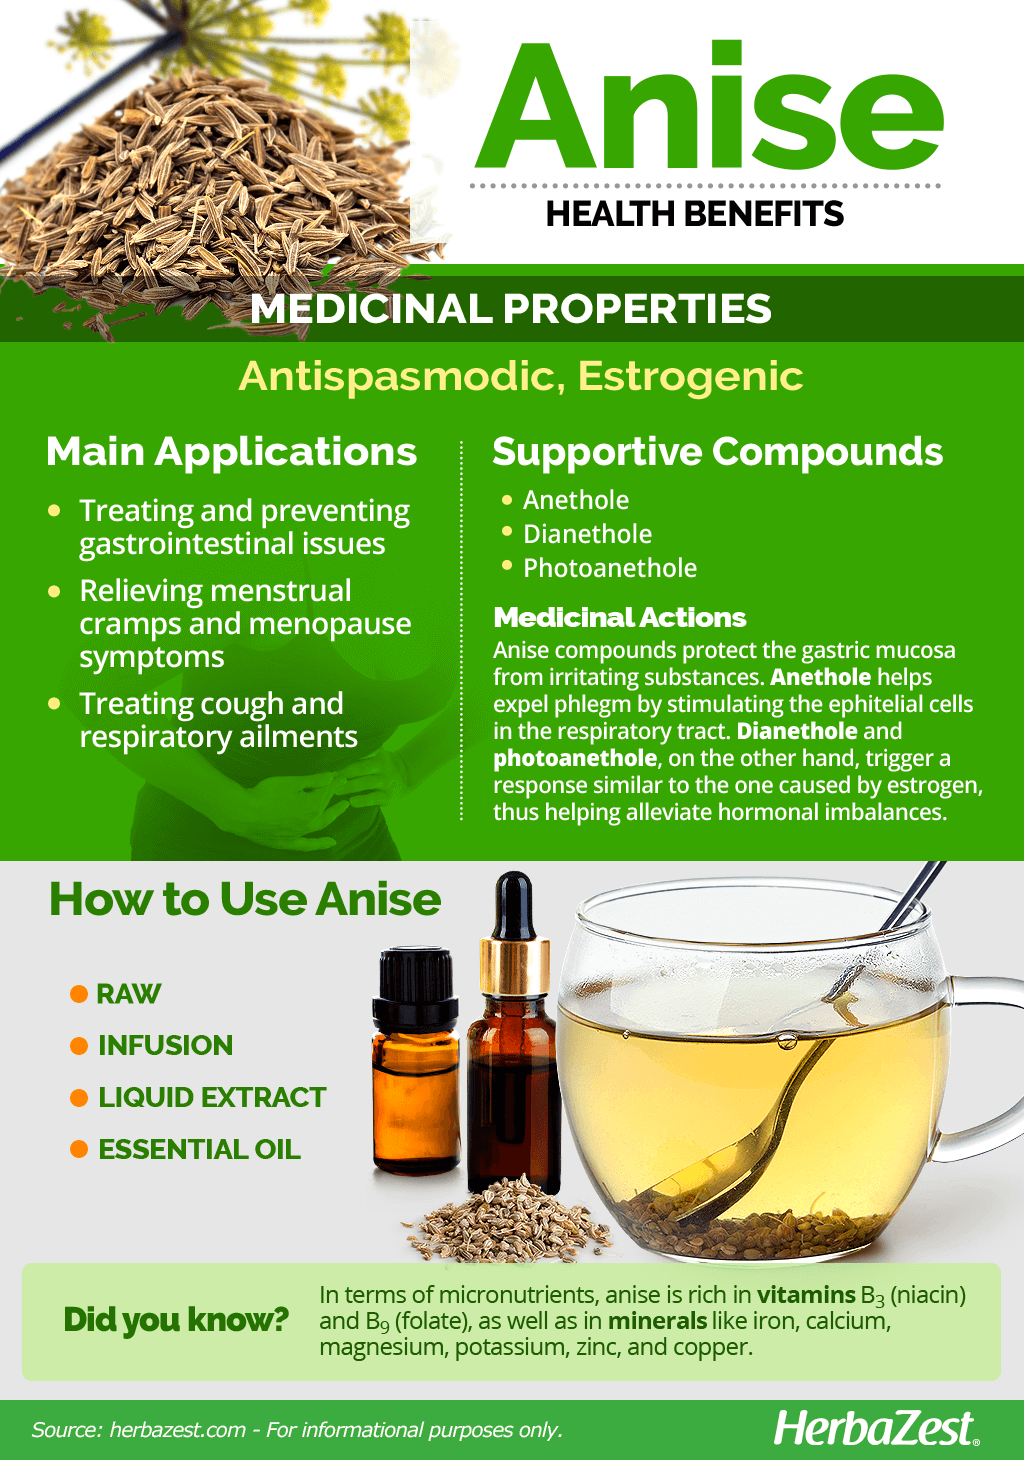 Anise Benefits